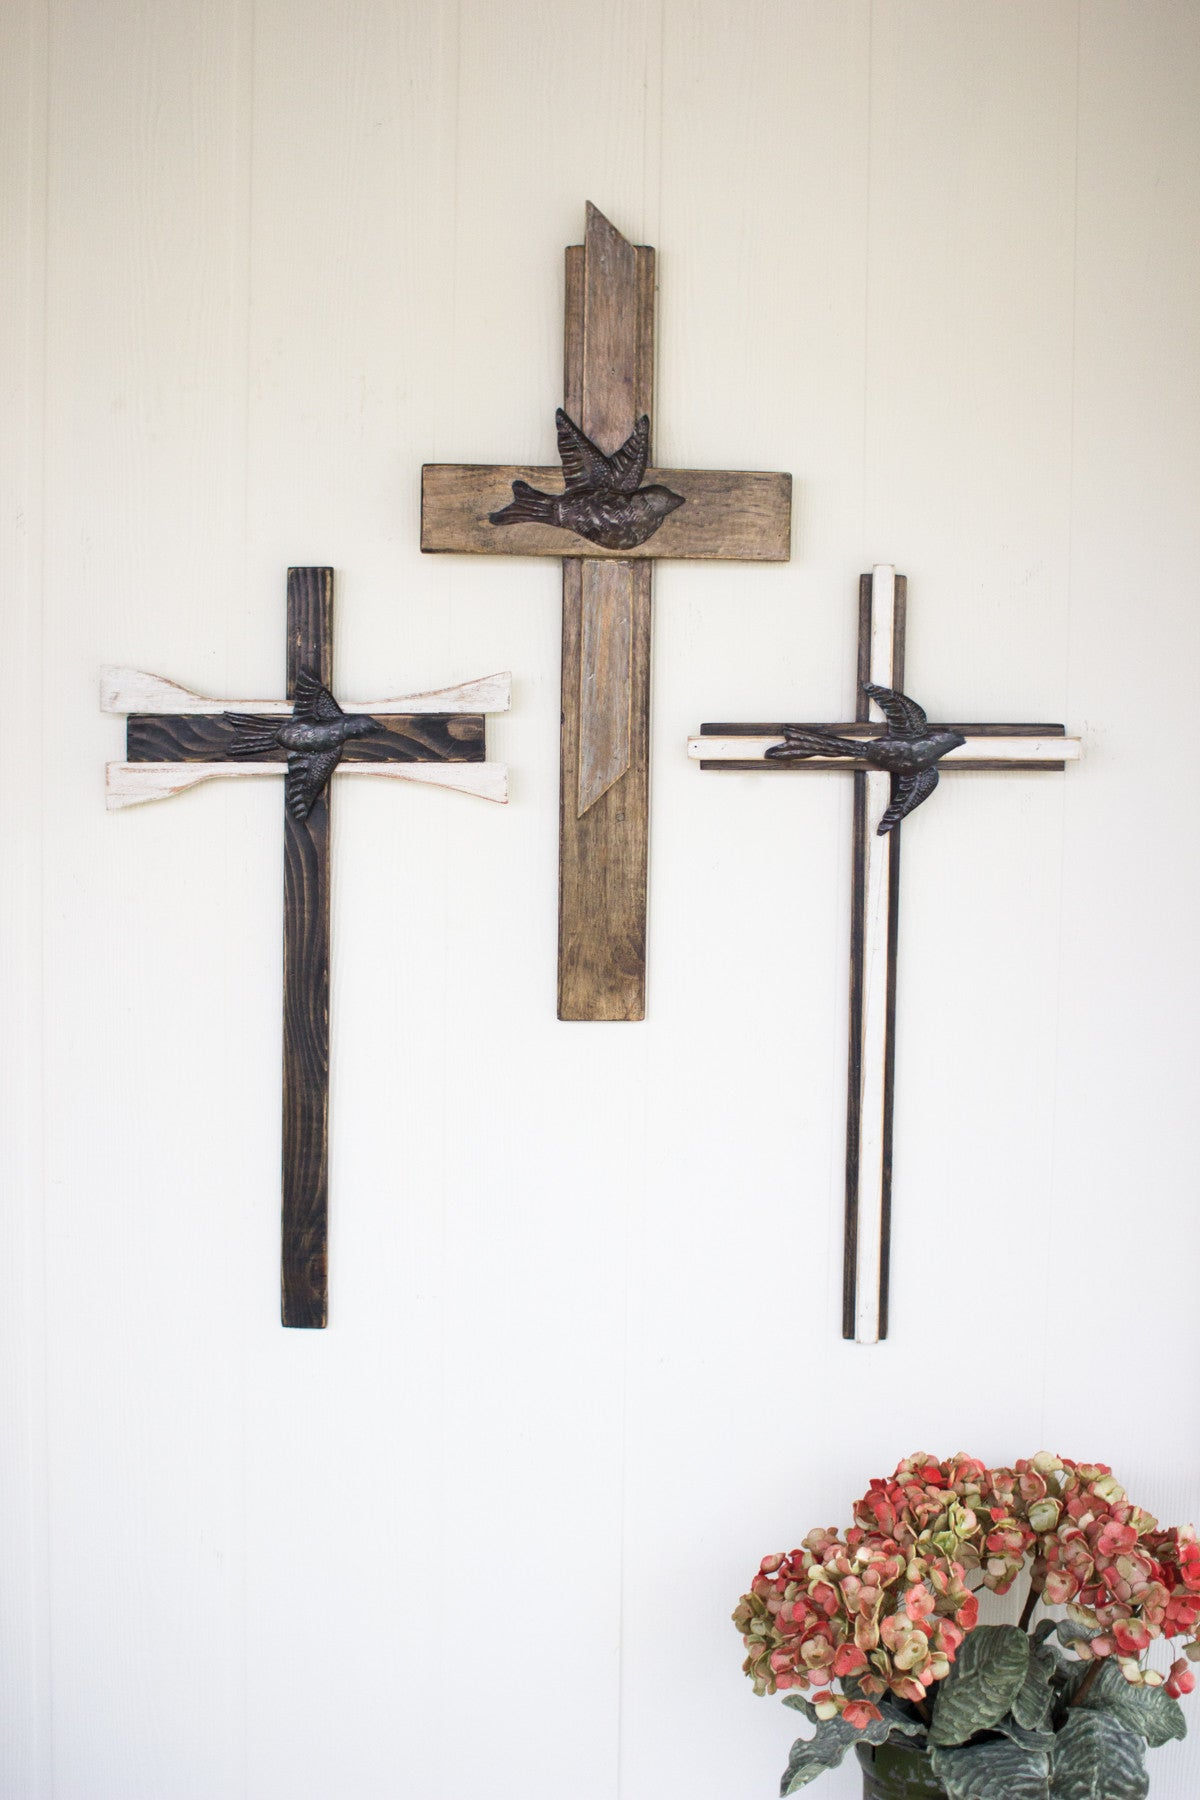 SET OF 3 RECYCLED WOOD CROSSES WITH HAND HAMMERED METAL BIRDS